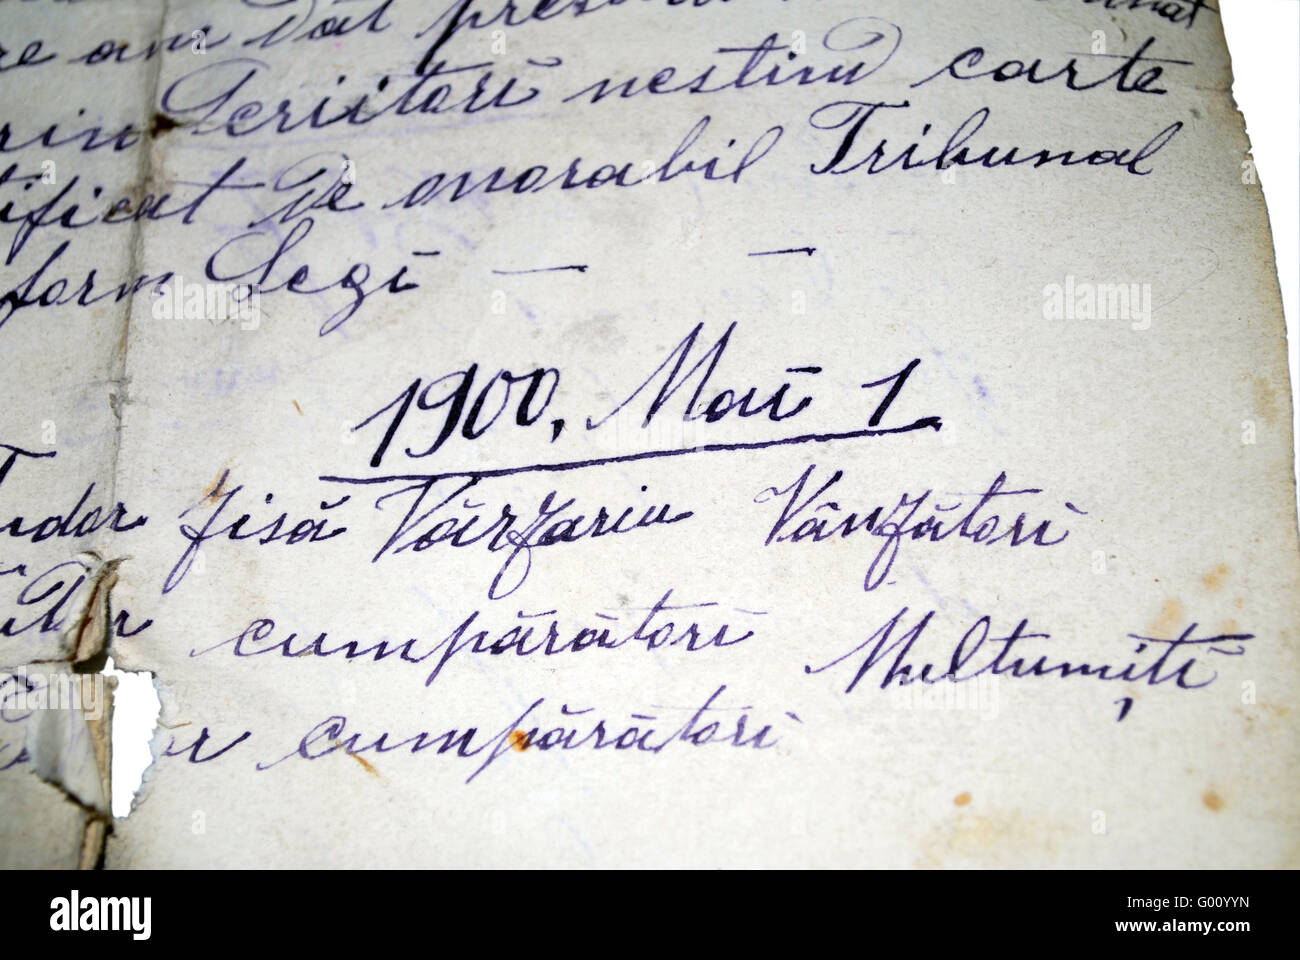 Hand Written Text - Stock Image